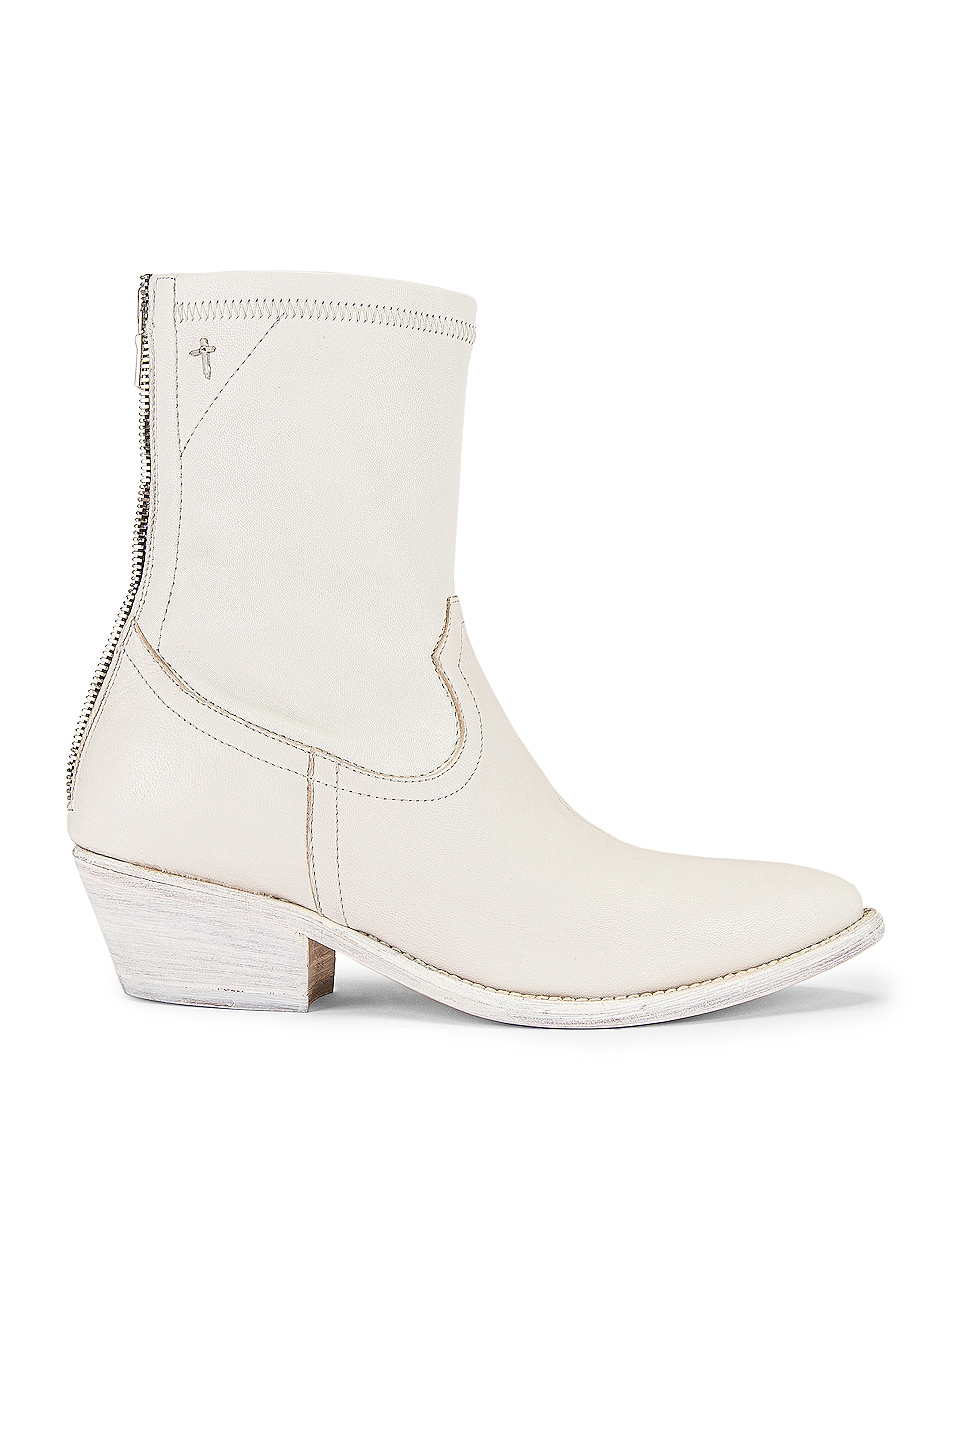 Image 1 of RtA Short Western Boot in White Leather